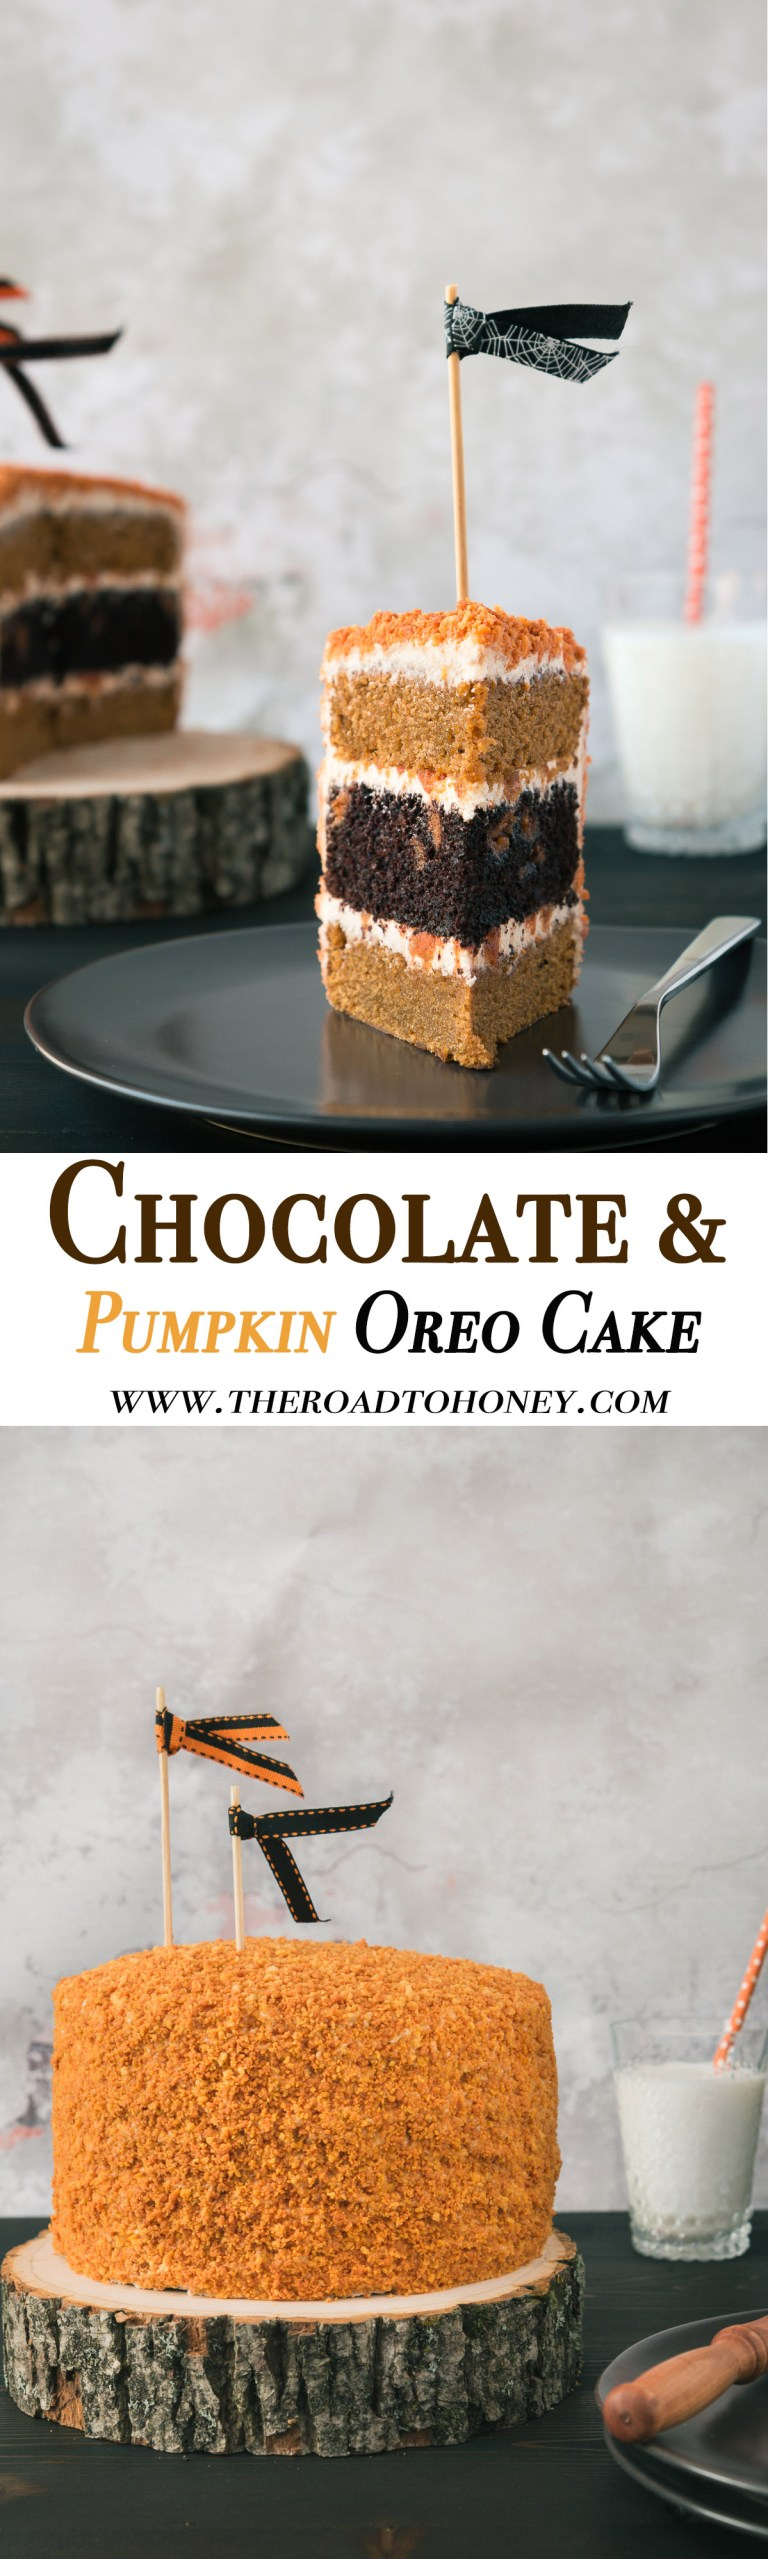 Chocolate & Pumpkin Oreo Cake with Brown Butter Cream Cheese Frosting - Celebrate fall & the holidays with this super moist Chocolate & Pumpkin Layer Oreo Cake covered in a dreamy Brown Butter & Cinnamon Cream Cheese Frosting, they coated in a layer of cookie crumbs. #OreoDessert #OreoCake #PumpkinDesserts #LayerCake